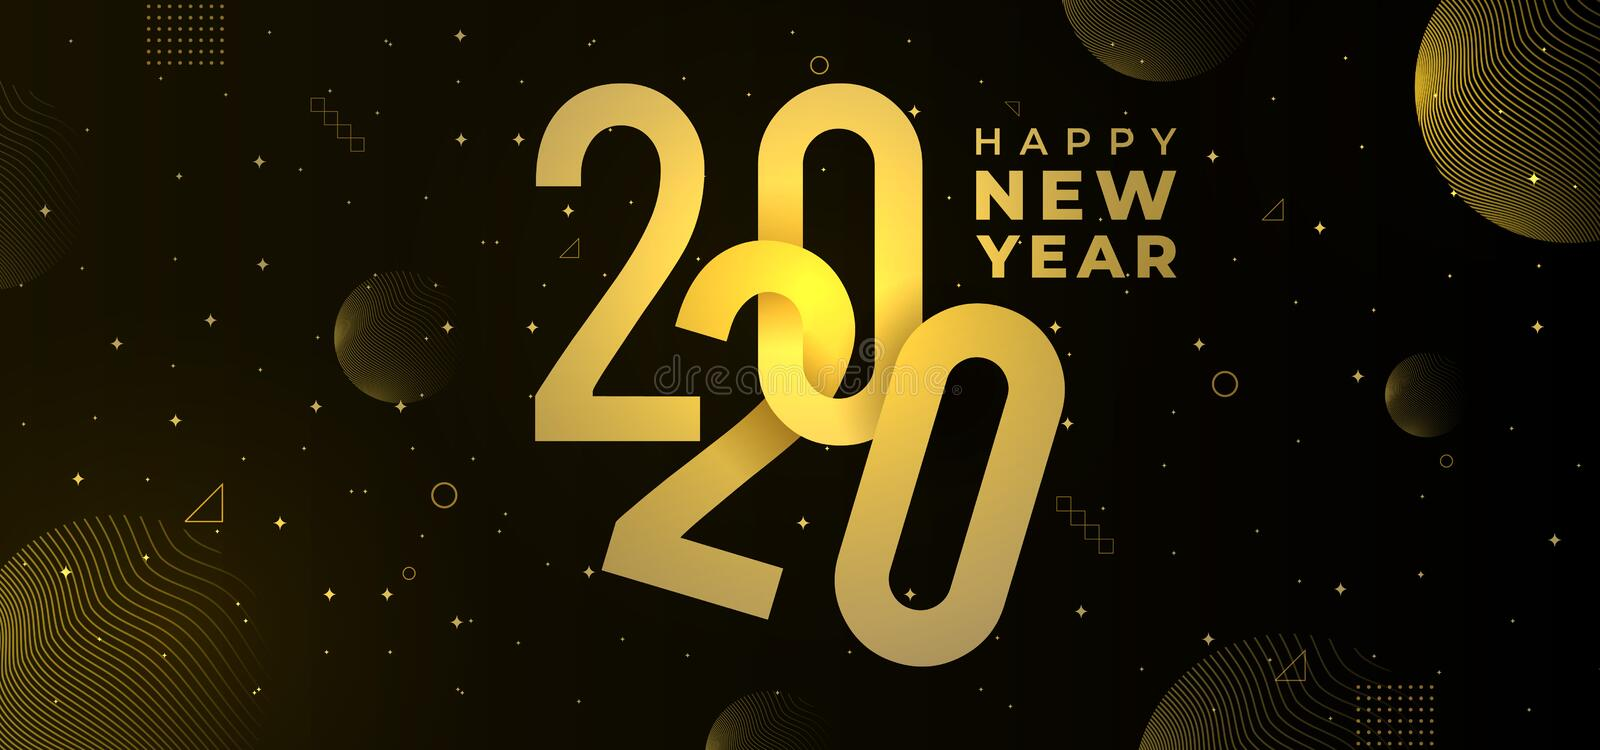 Trendy happy new year 2020 greeting modern design. Vector eps 10. Modern golden texture with lights elegant and luxury style vector illustration